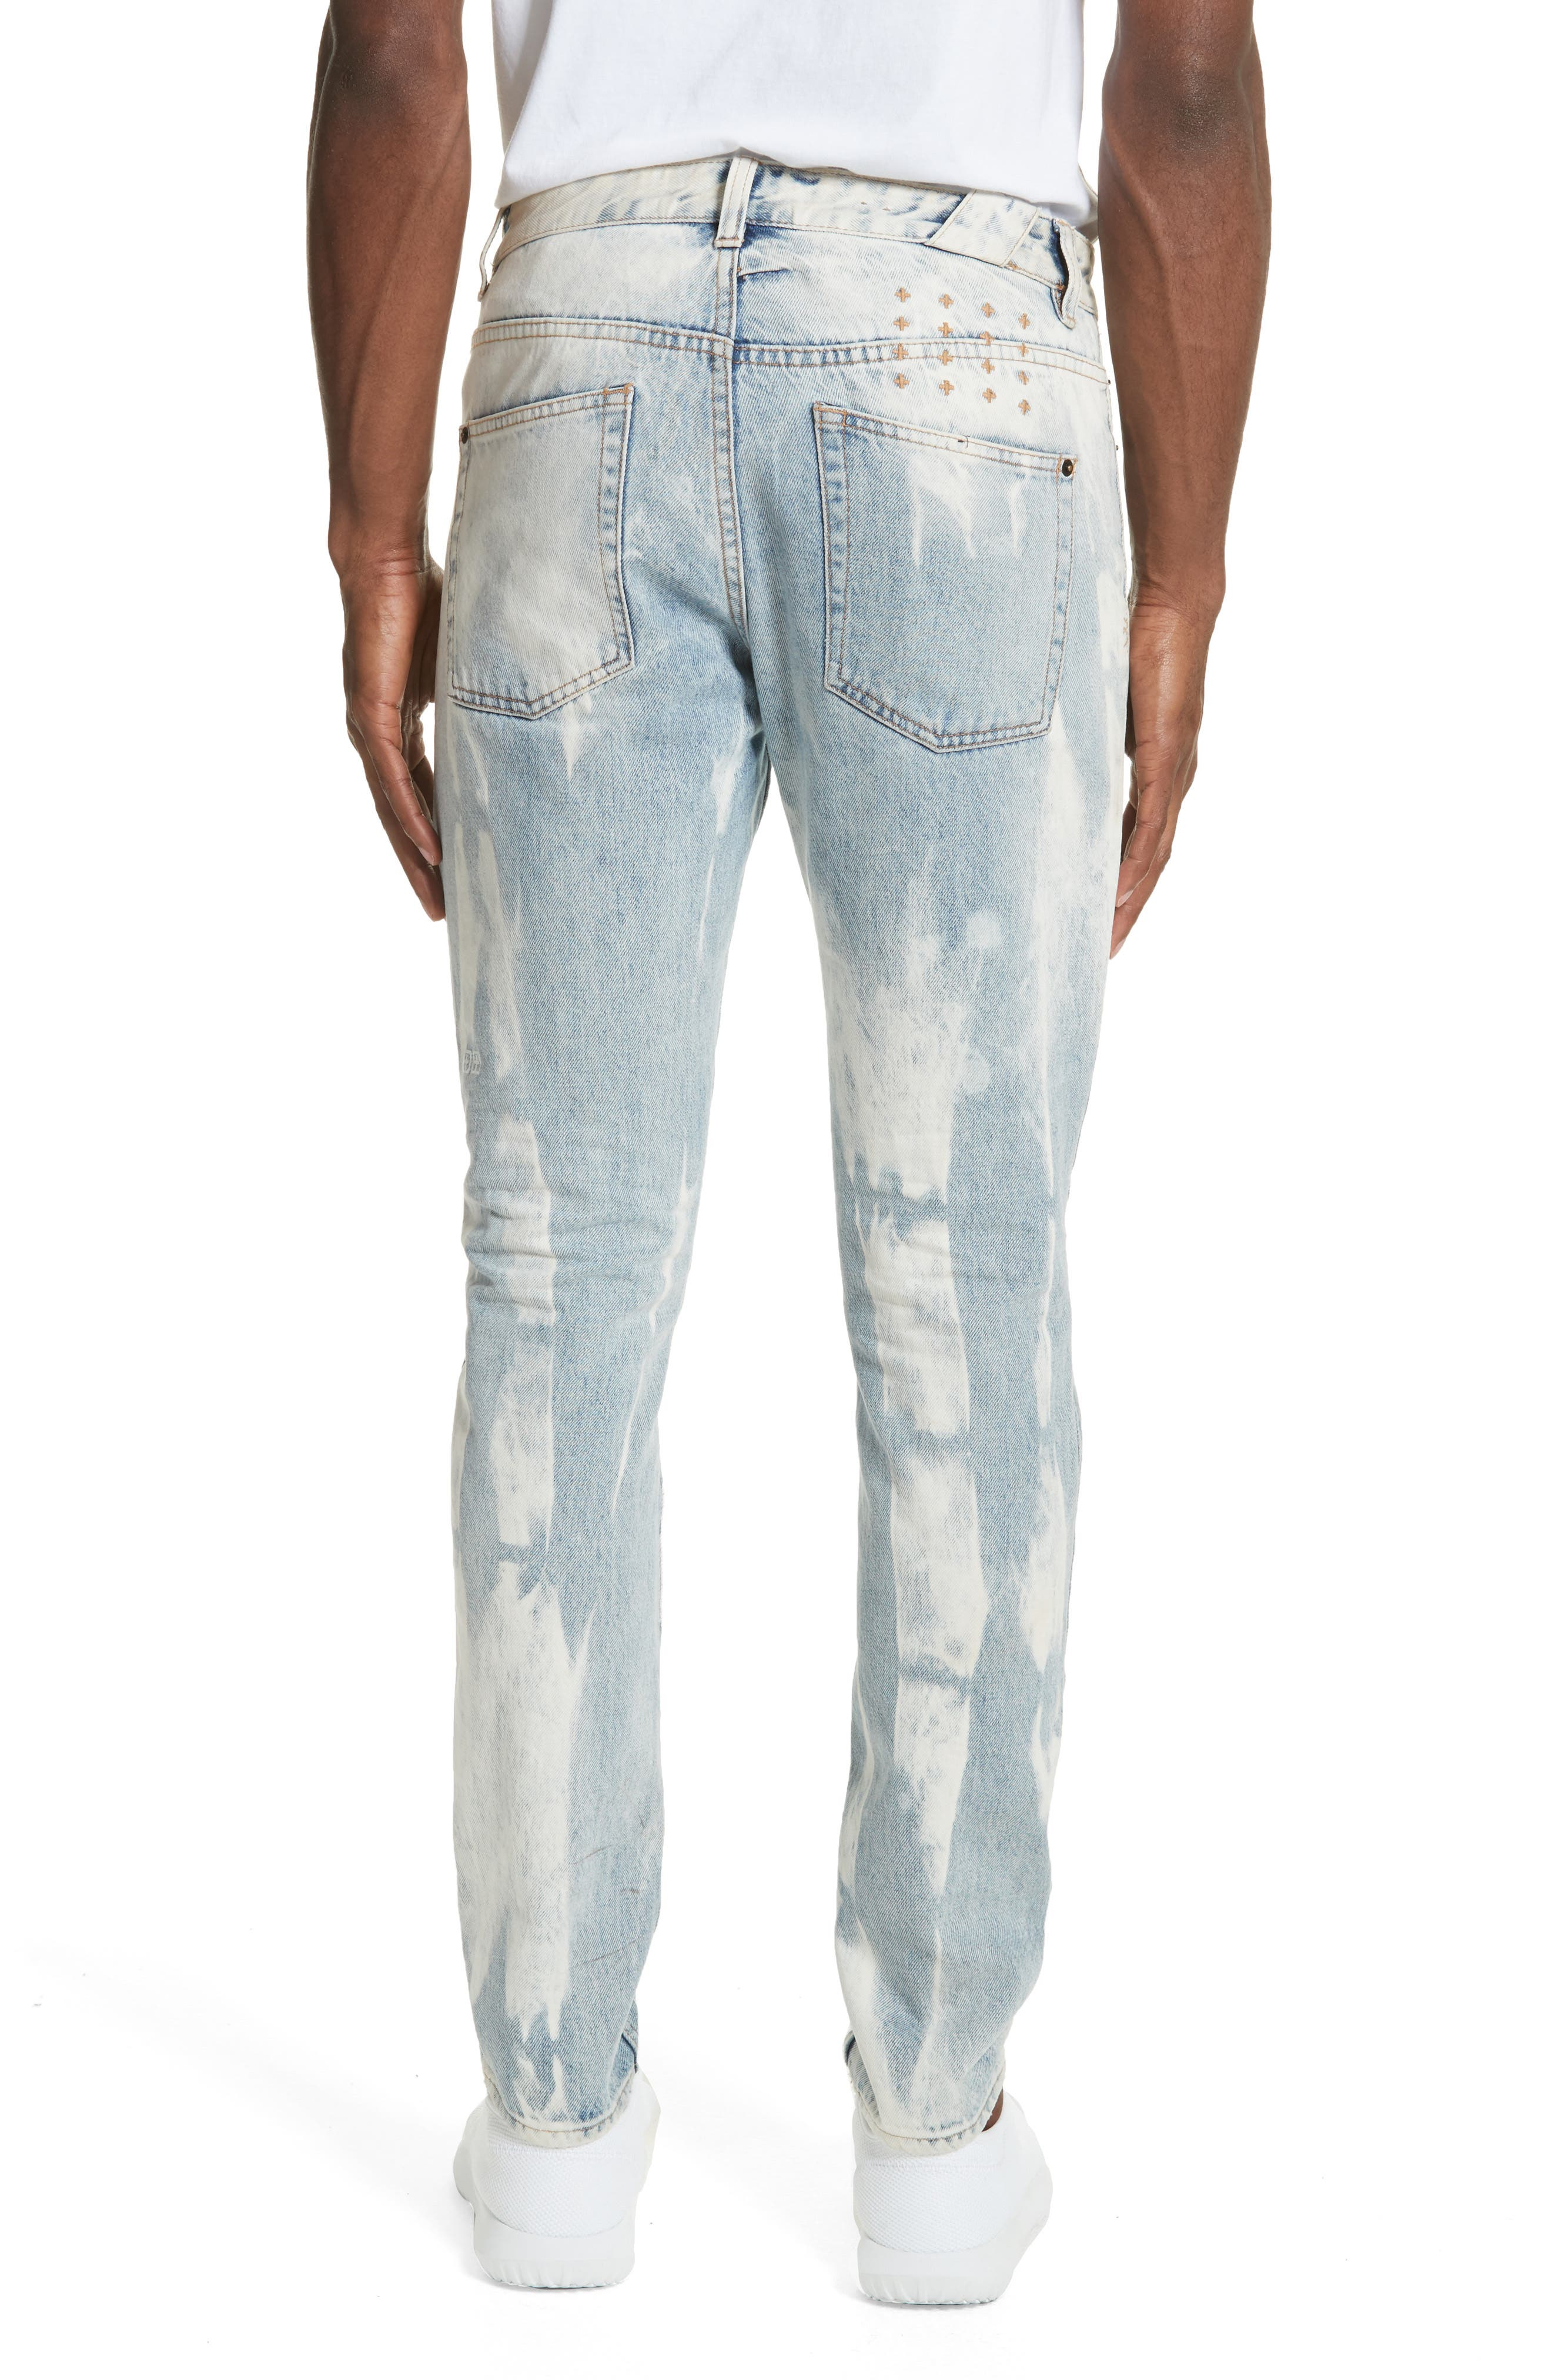 Chitch Mile Skinny Jeans,                             Alternate thumbnail 2, color,                             460